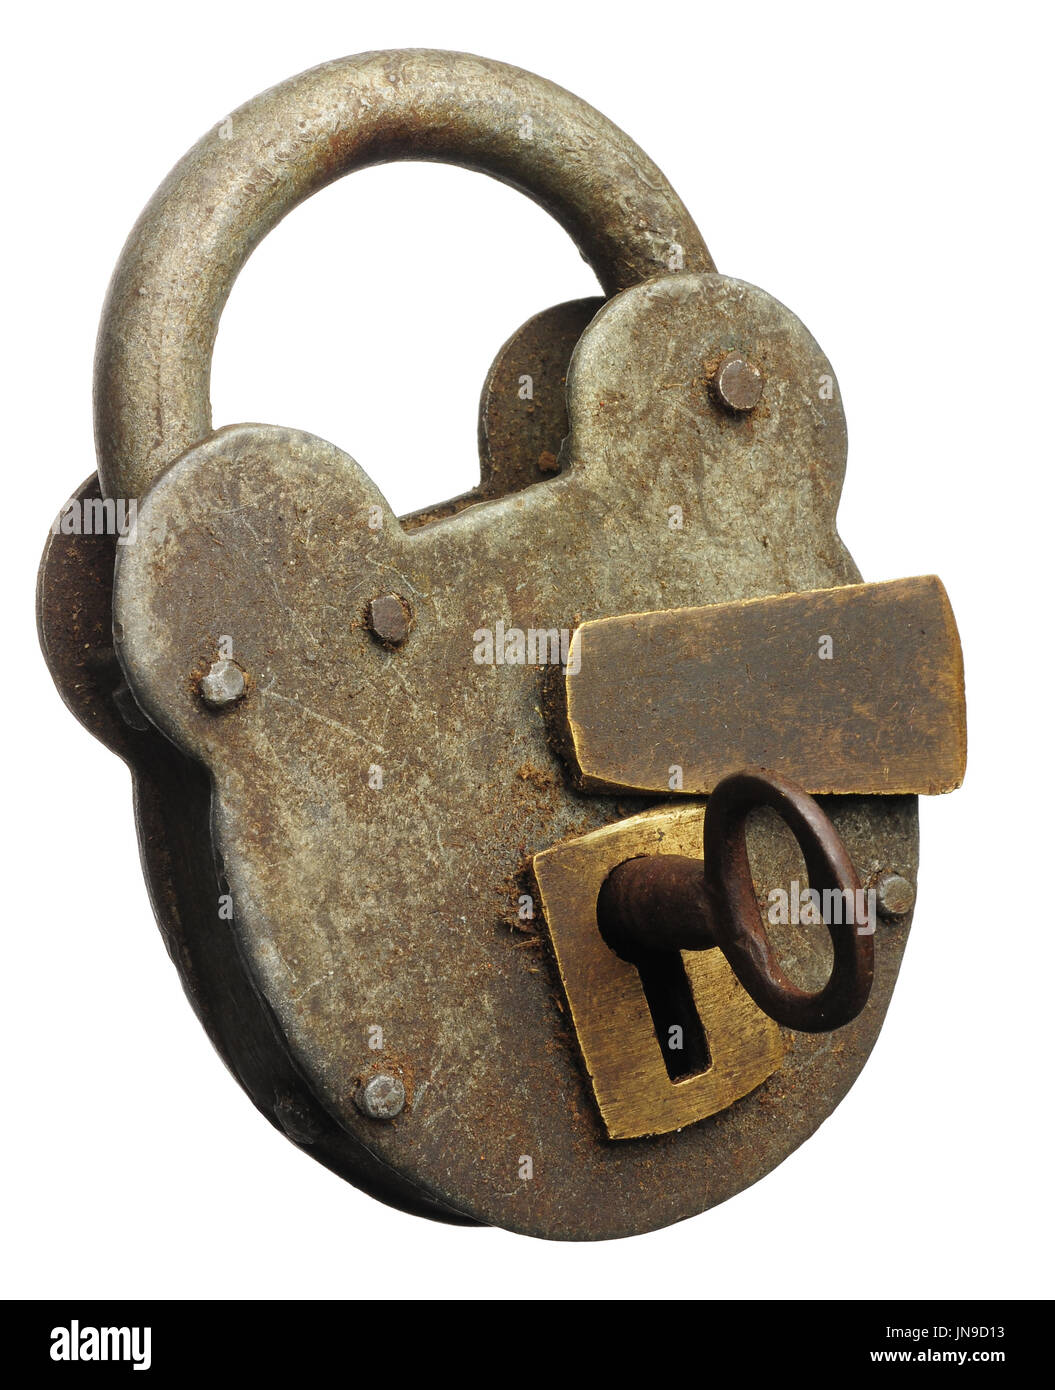 An old padlocked locked shut with the key in the lock - Stock Image